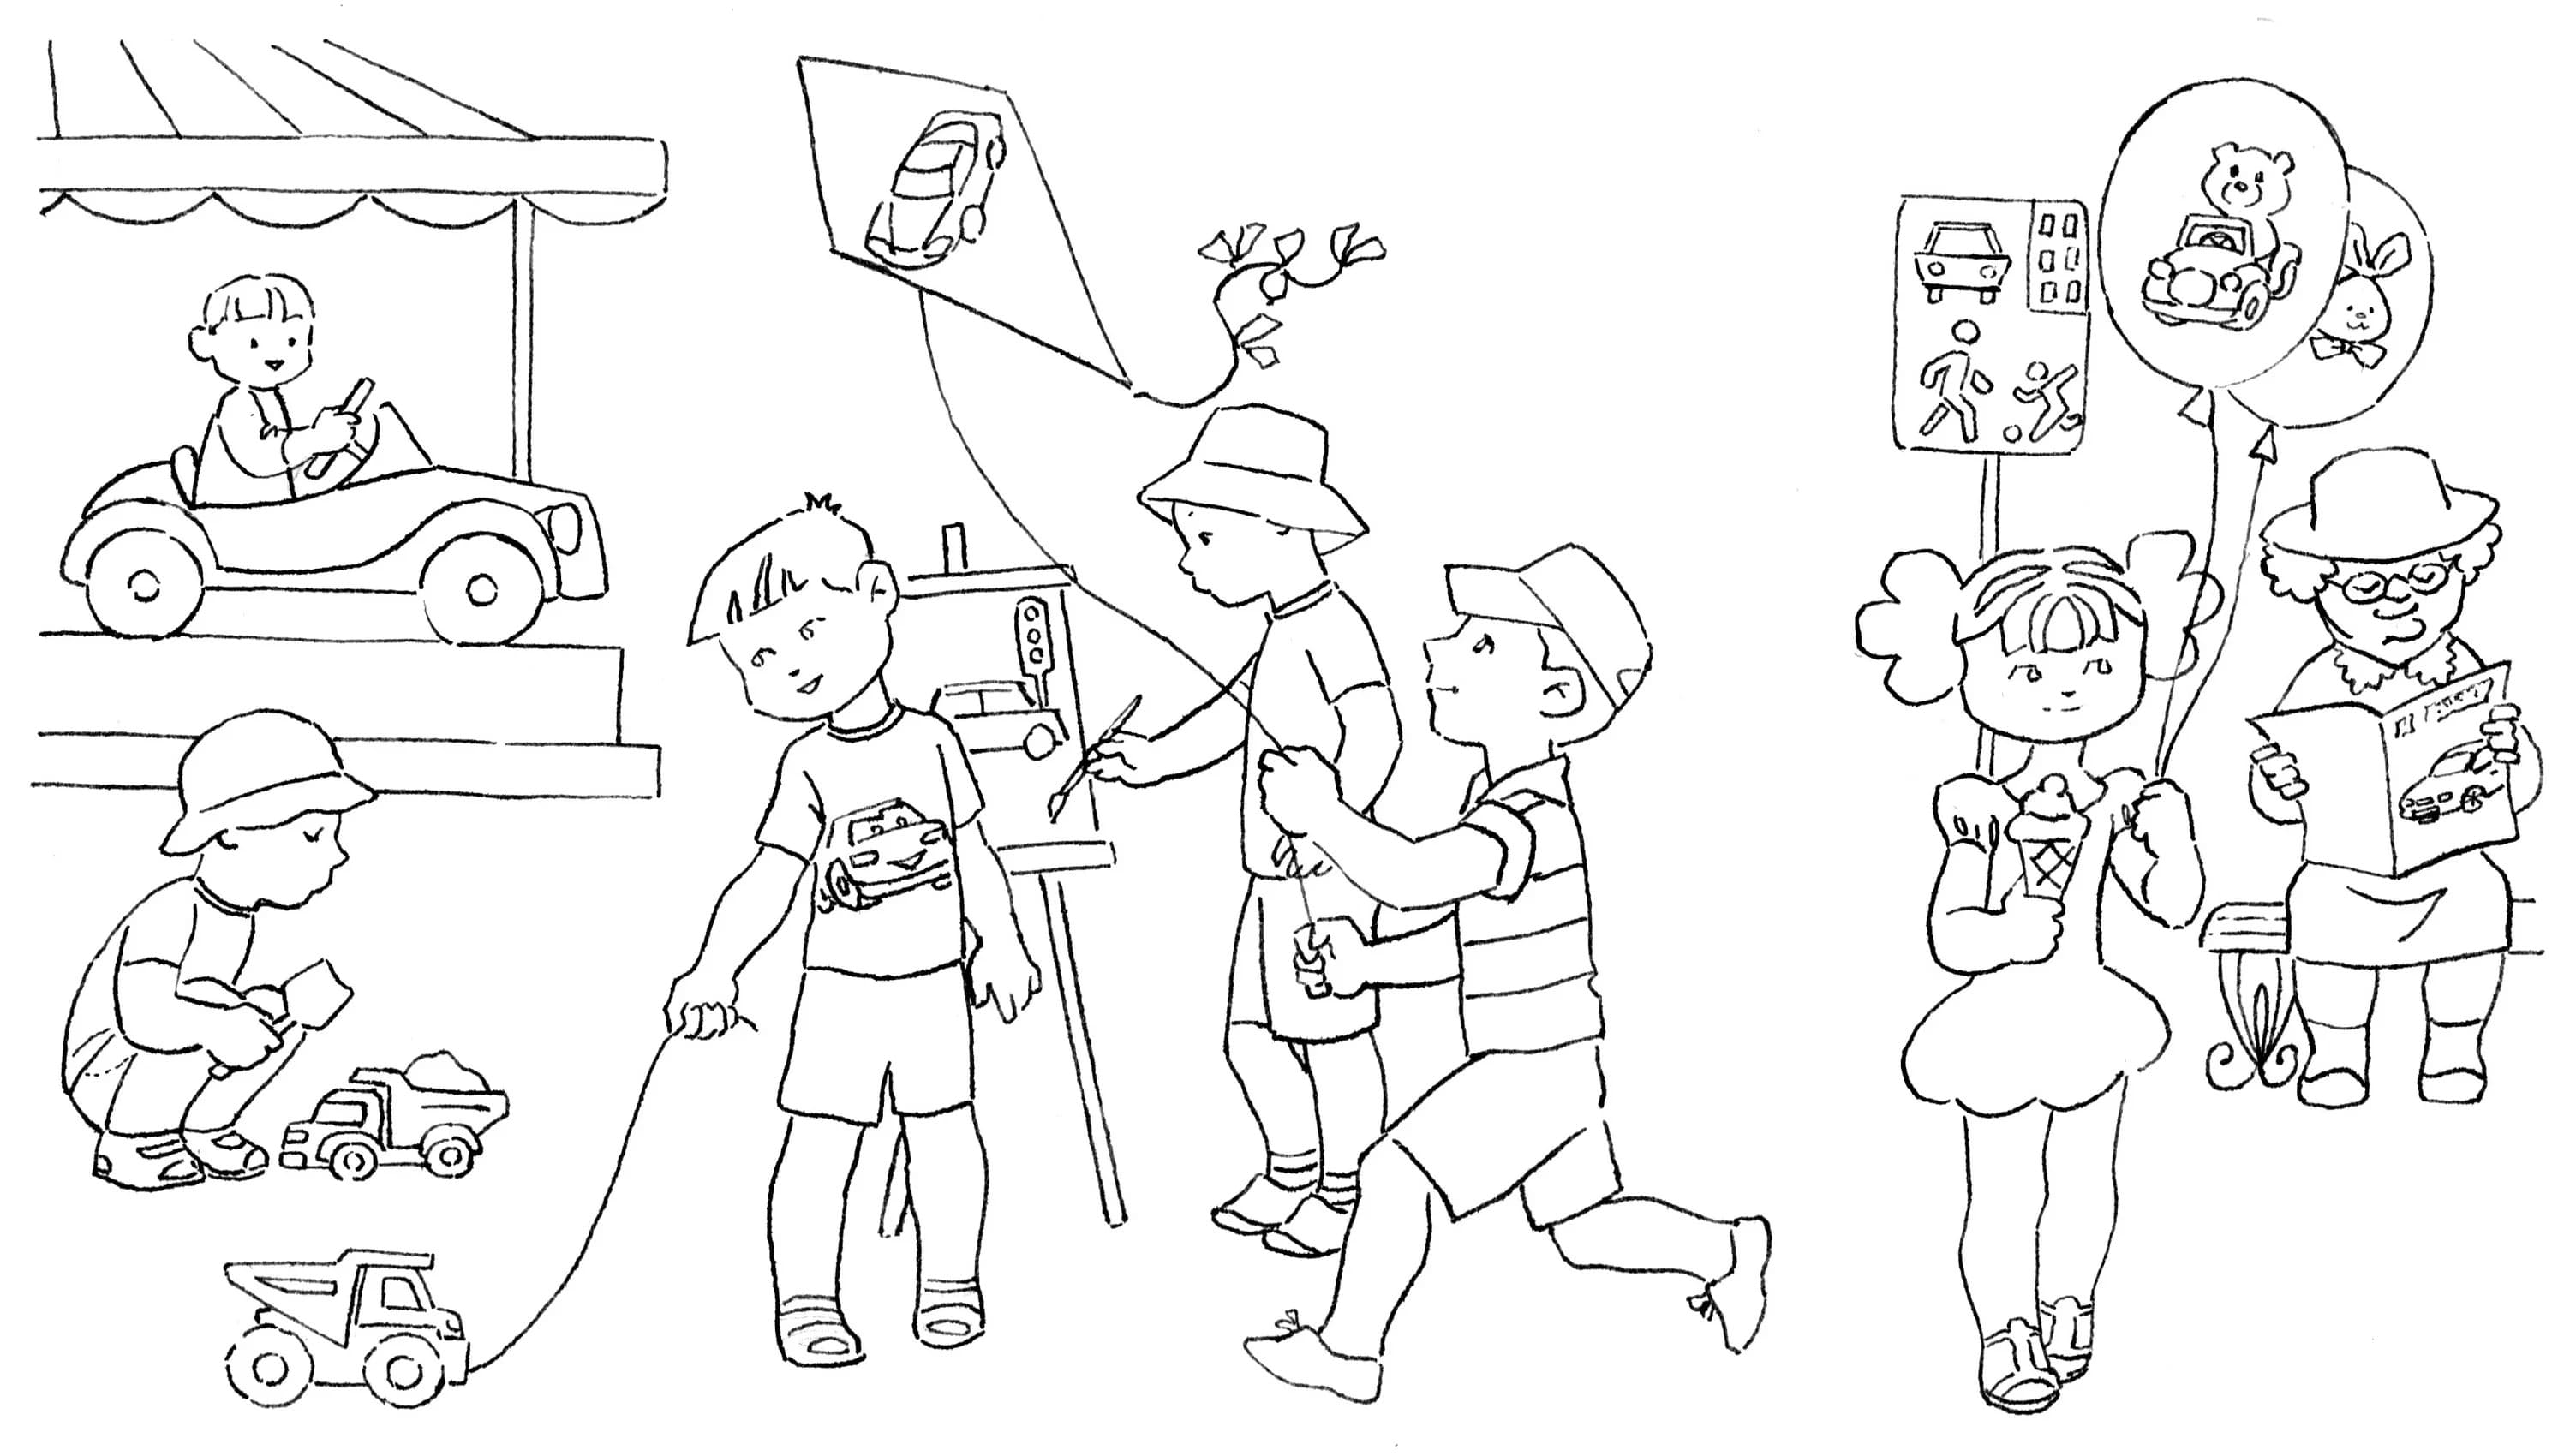 Kindergarten Coloring Pages. 100 Pictures for Free Printing